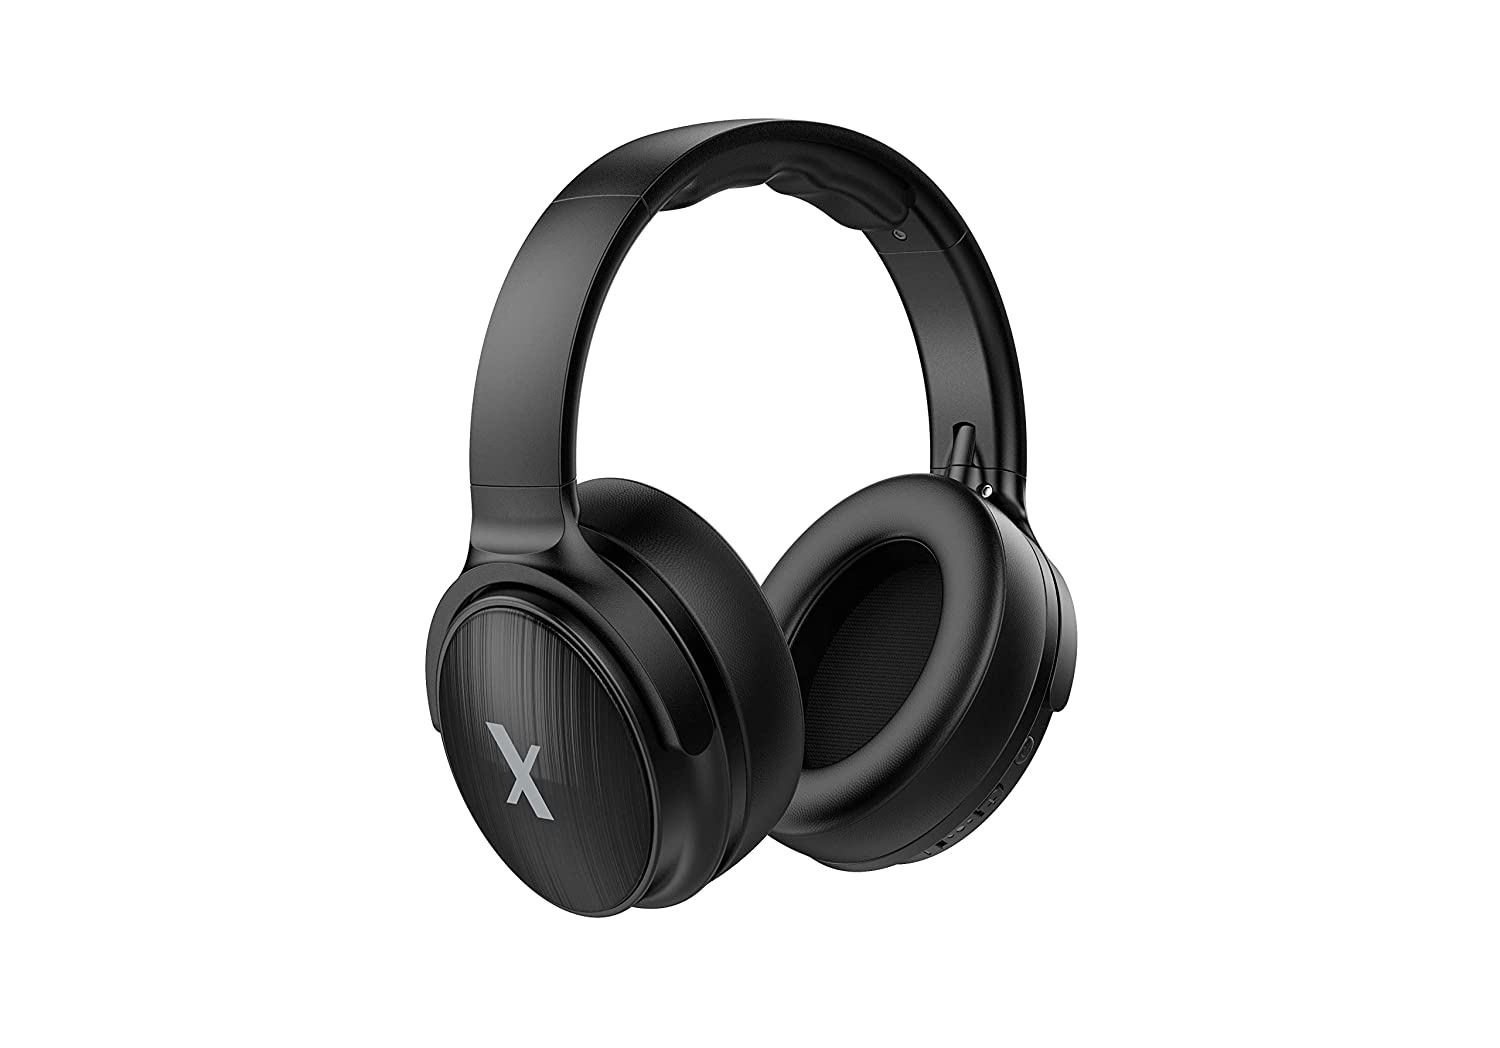 Over-Ear Bluetooth 5.0 Headphone with Built-in Mic